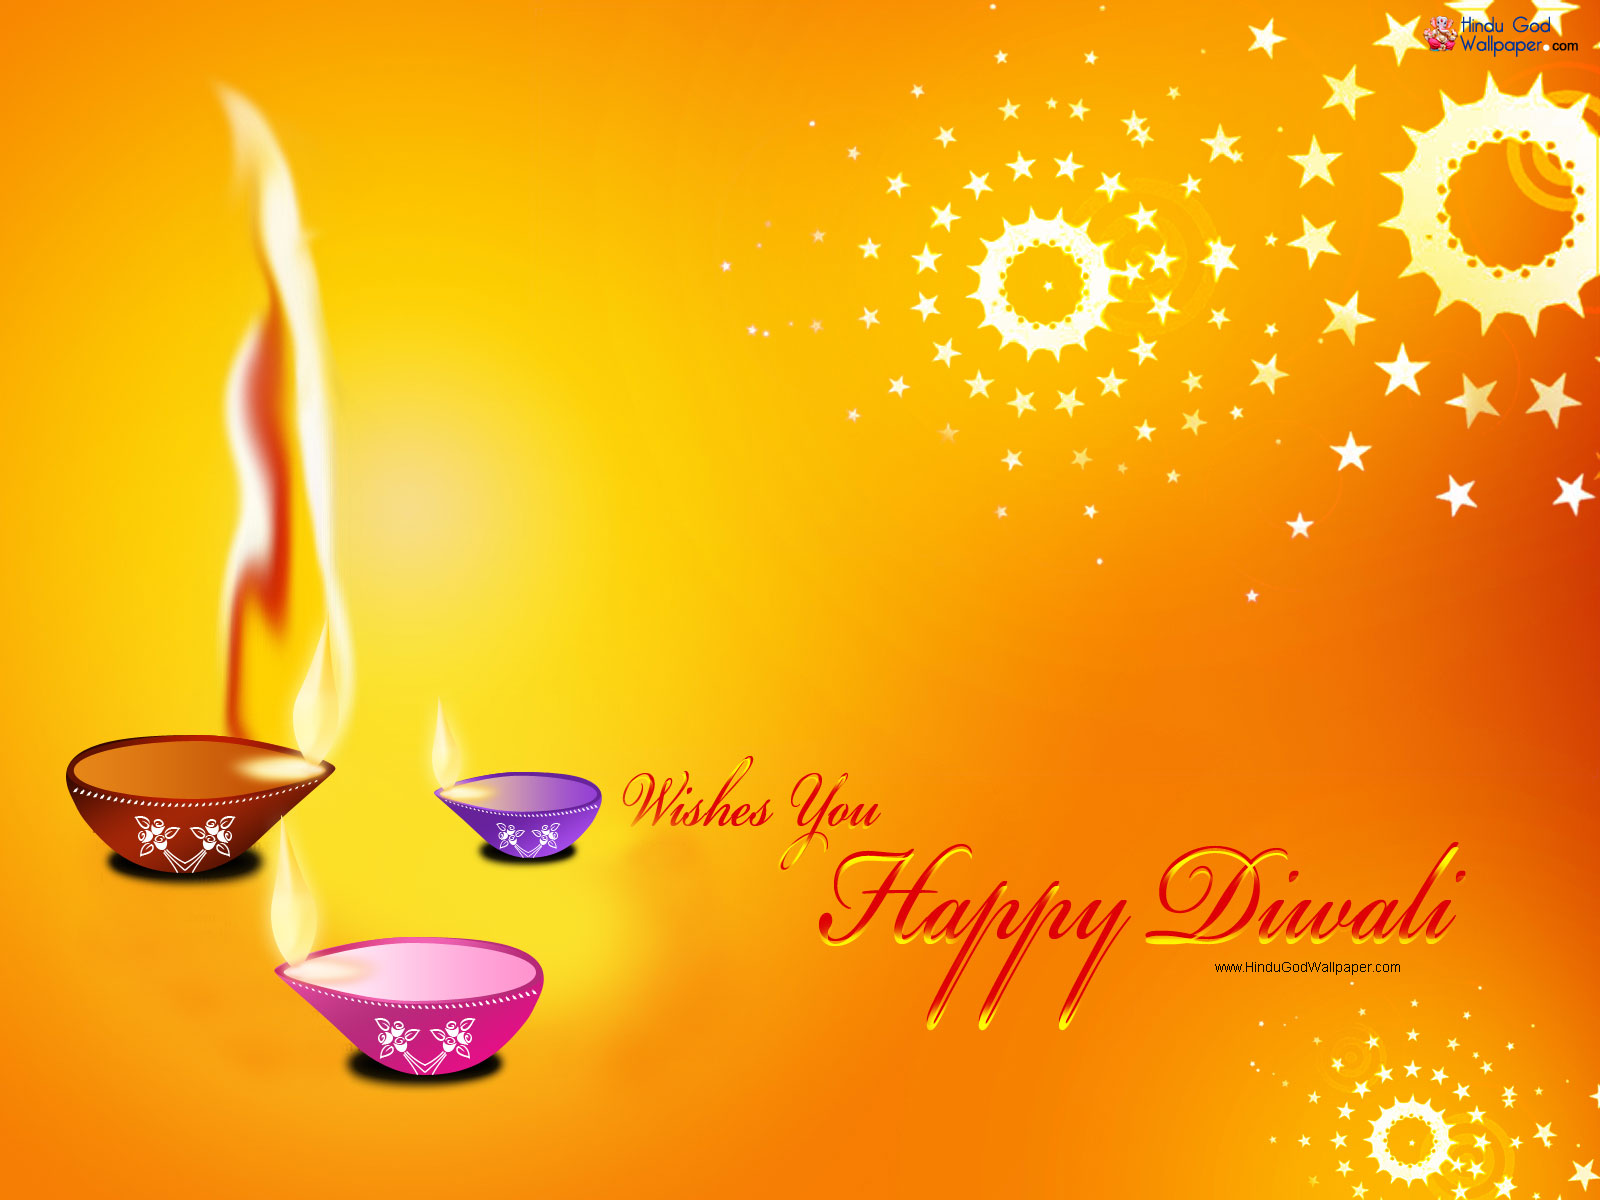 Happy diwali greetings in hindi wishes 2015 cards images happy happy diwali 2015 essays in english kristyandbryce Gallery